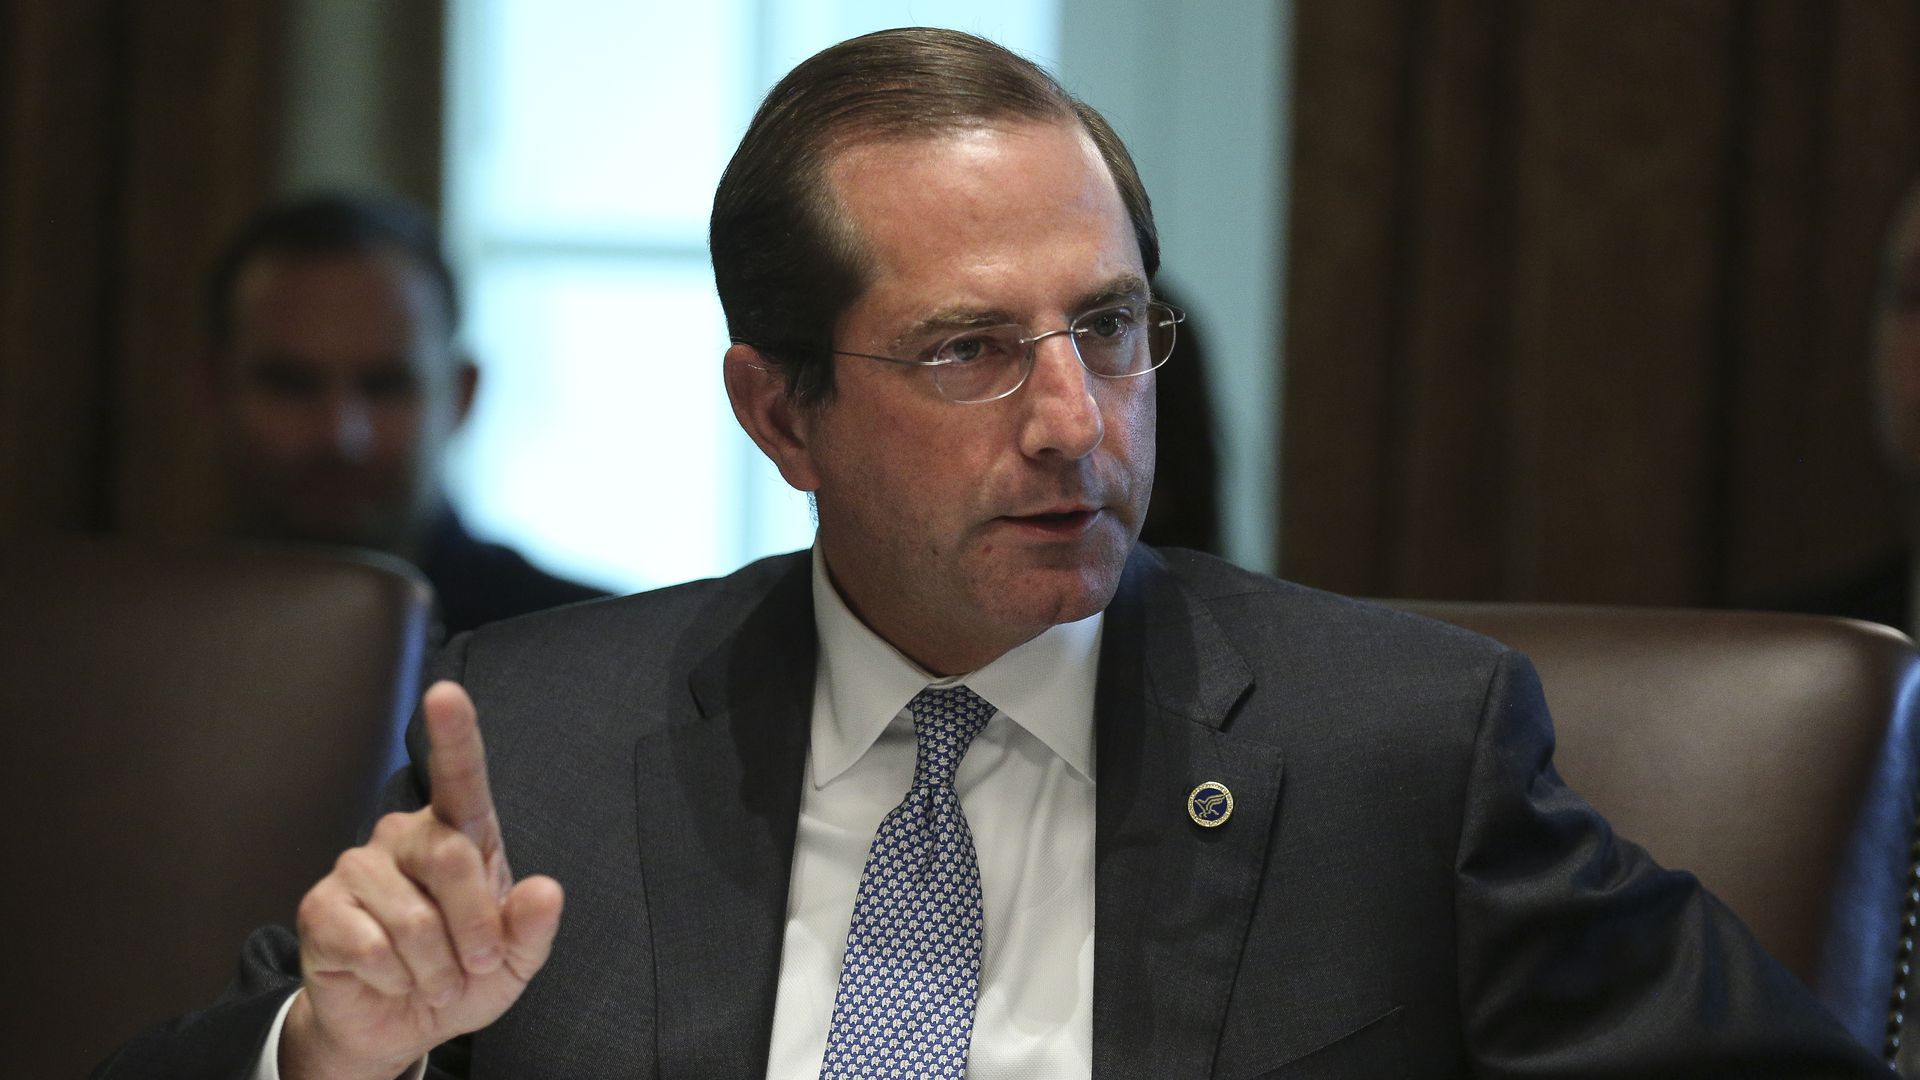 HHS Secretary Alex Azar sits and talks in a brown leather chair, pointing his index finger at the ceiling.